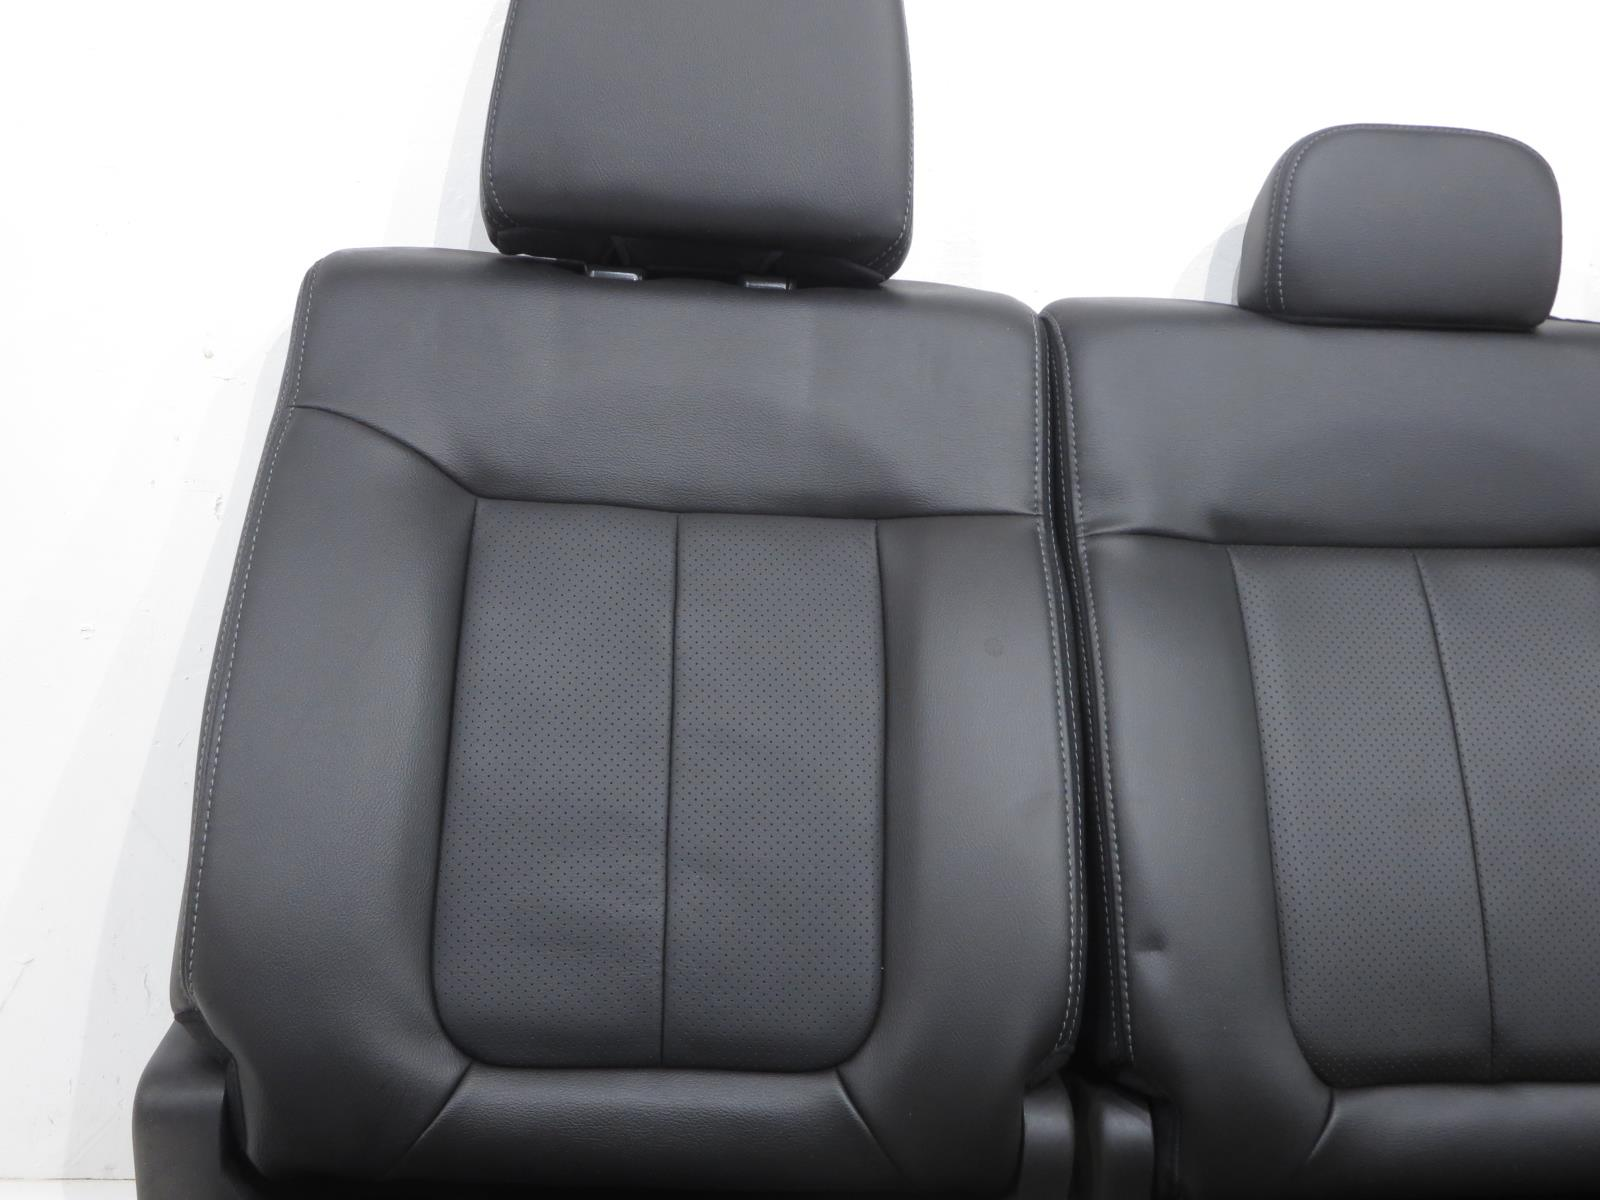 f150 seat ford rear cab crew 2009 leather